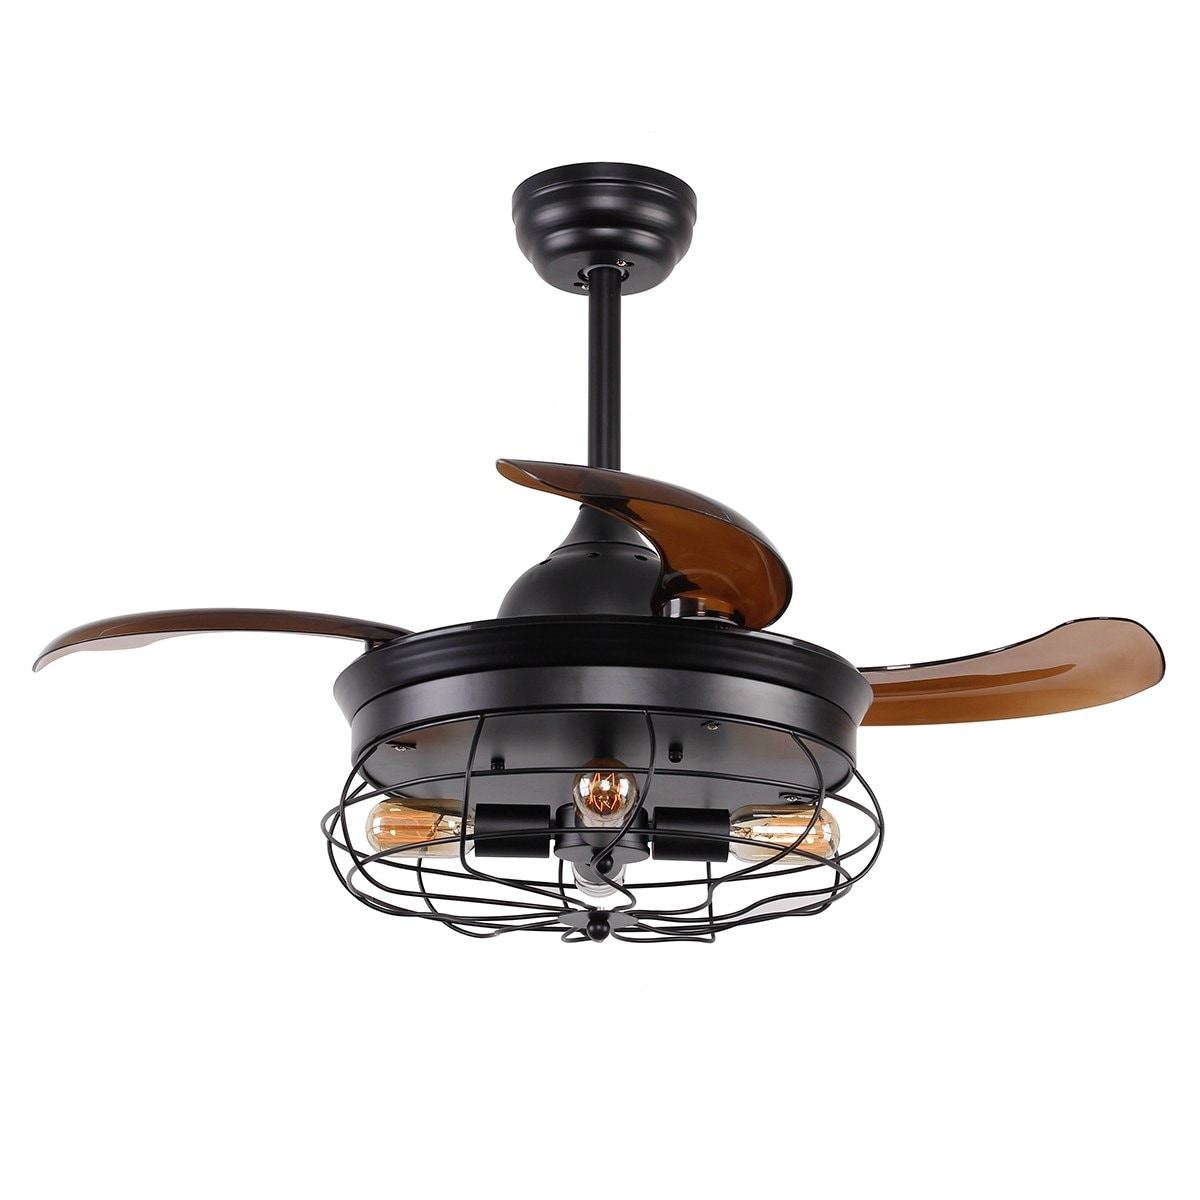 Buy industrial ceiling fans online at overstock our best buy industrial ceiling fans online at overstock our best lighting deals aloadofball Images